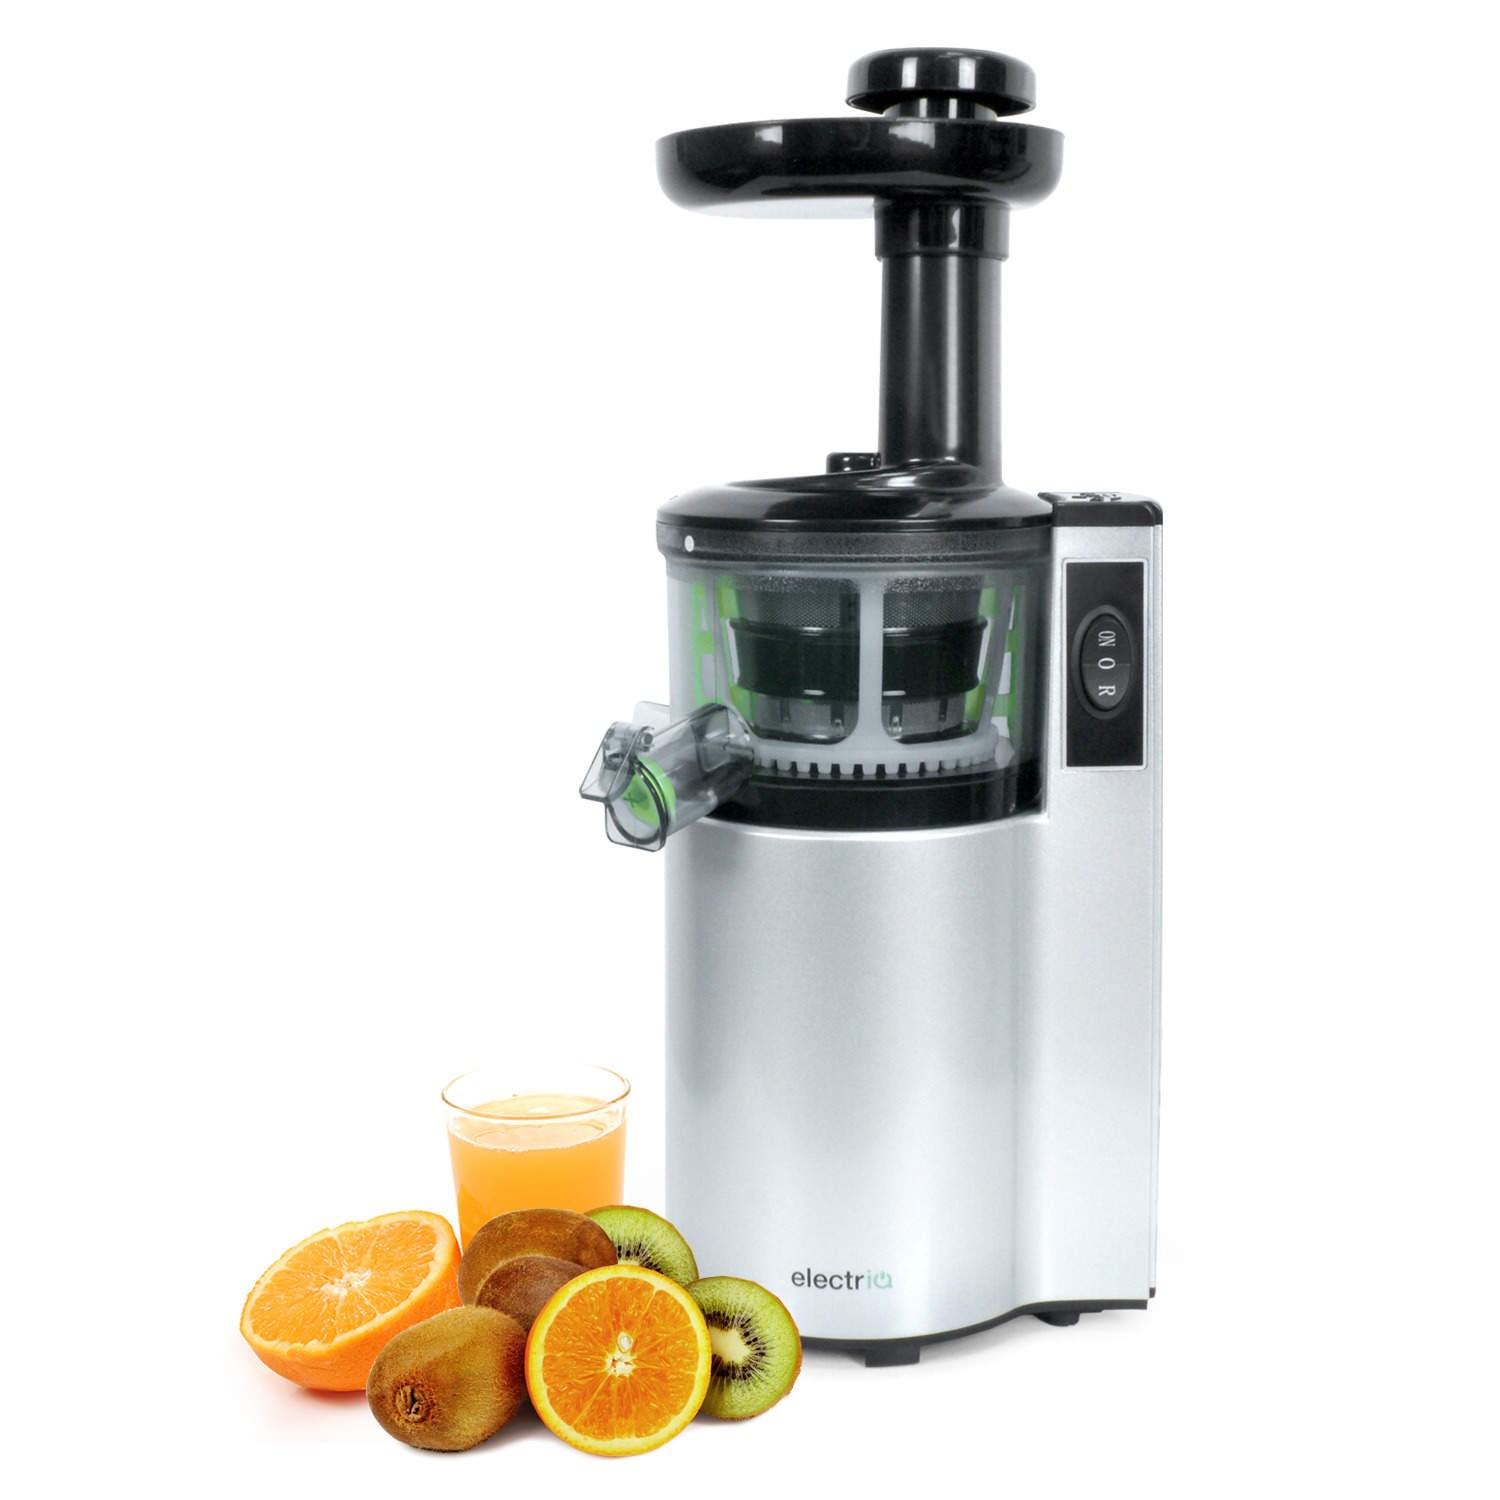 Slow Speed Masticating Juicer : ElectriQ vertical Slow Masticating Juicer Fruit vegetable Juice Extractor eBay